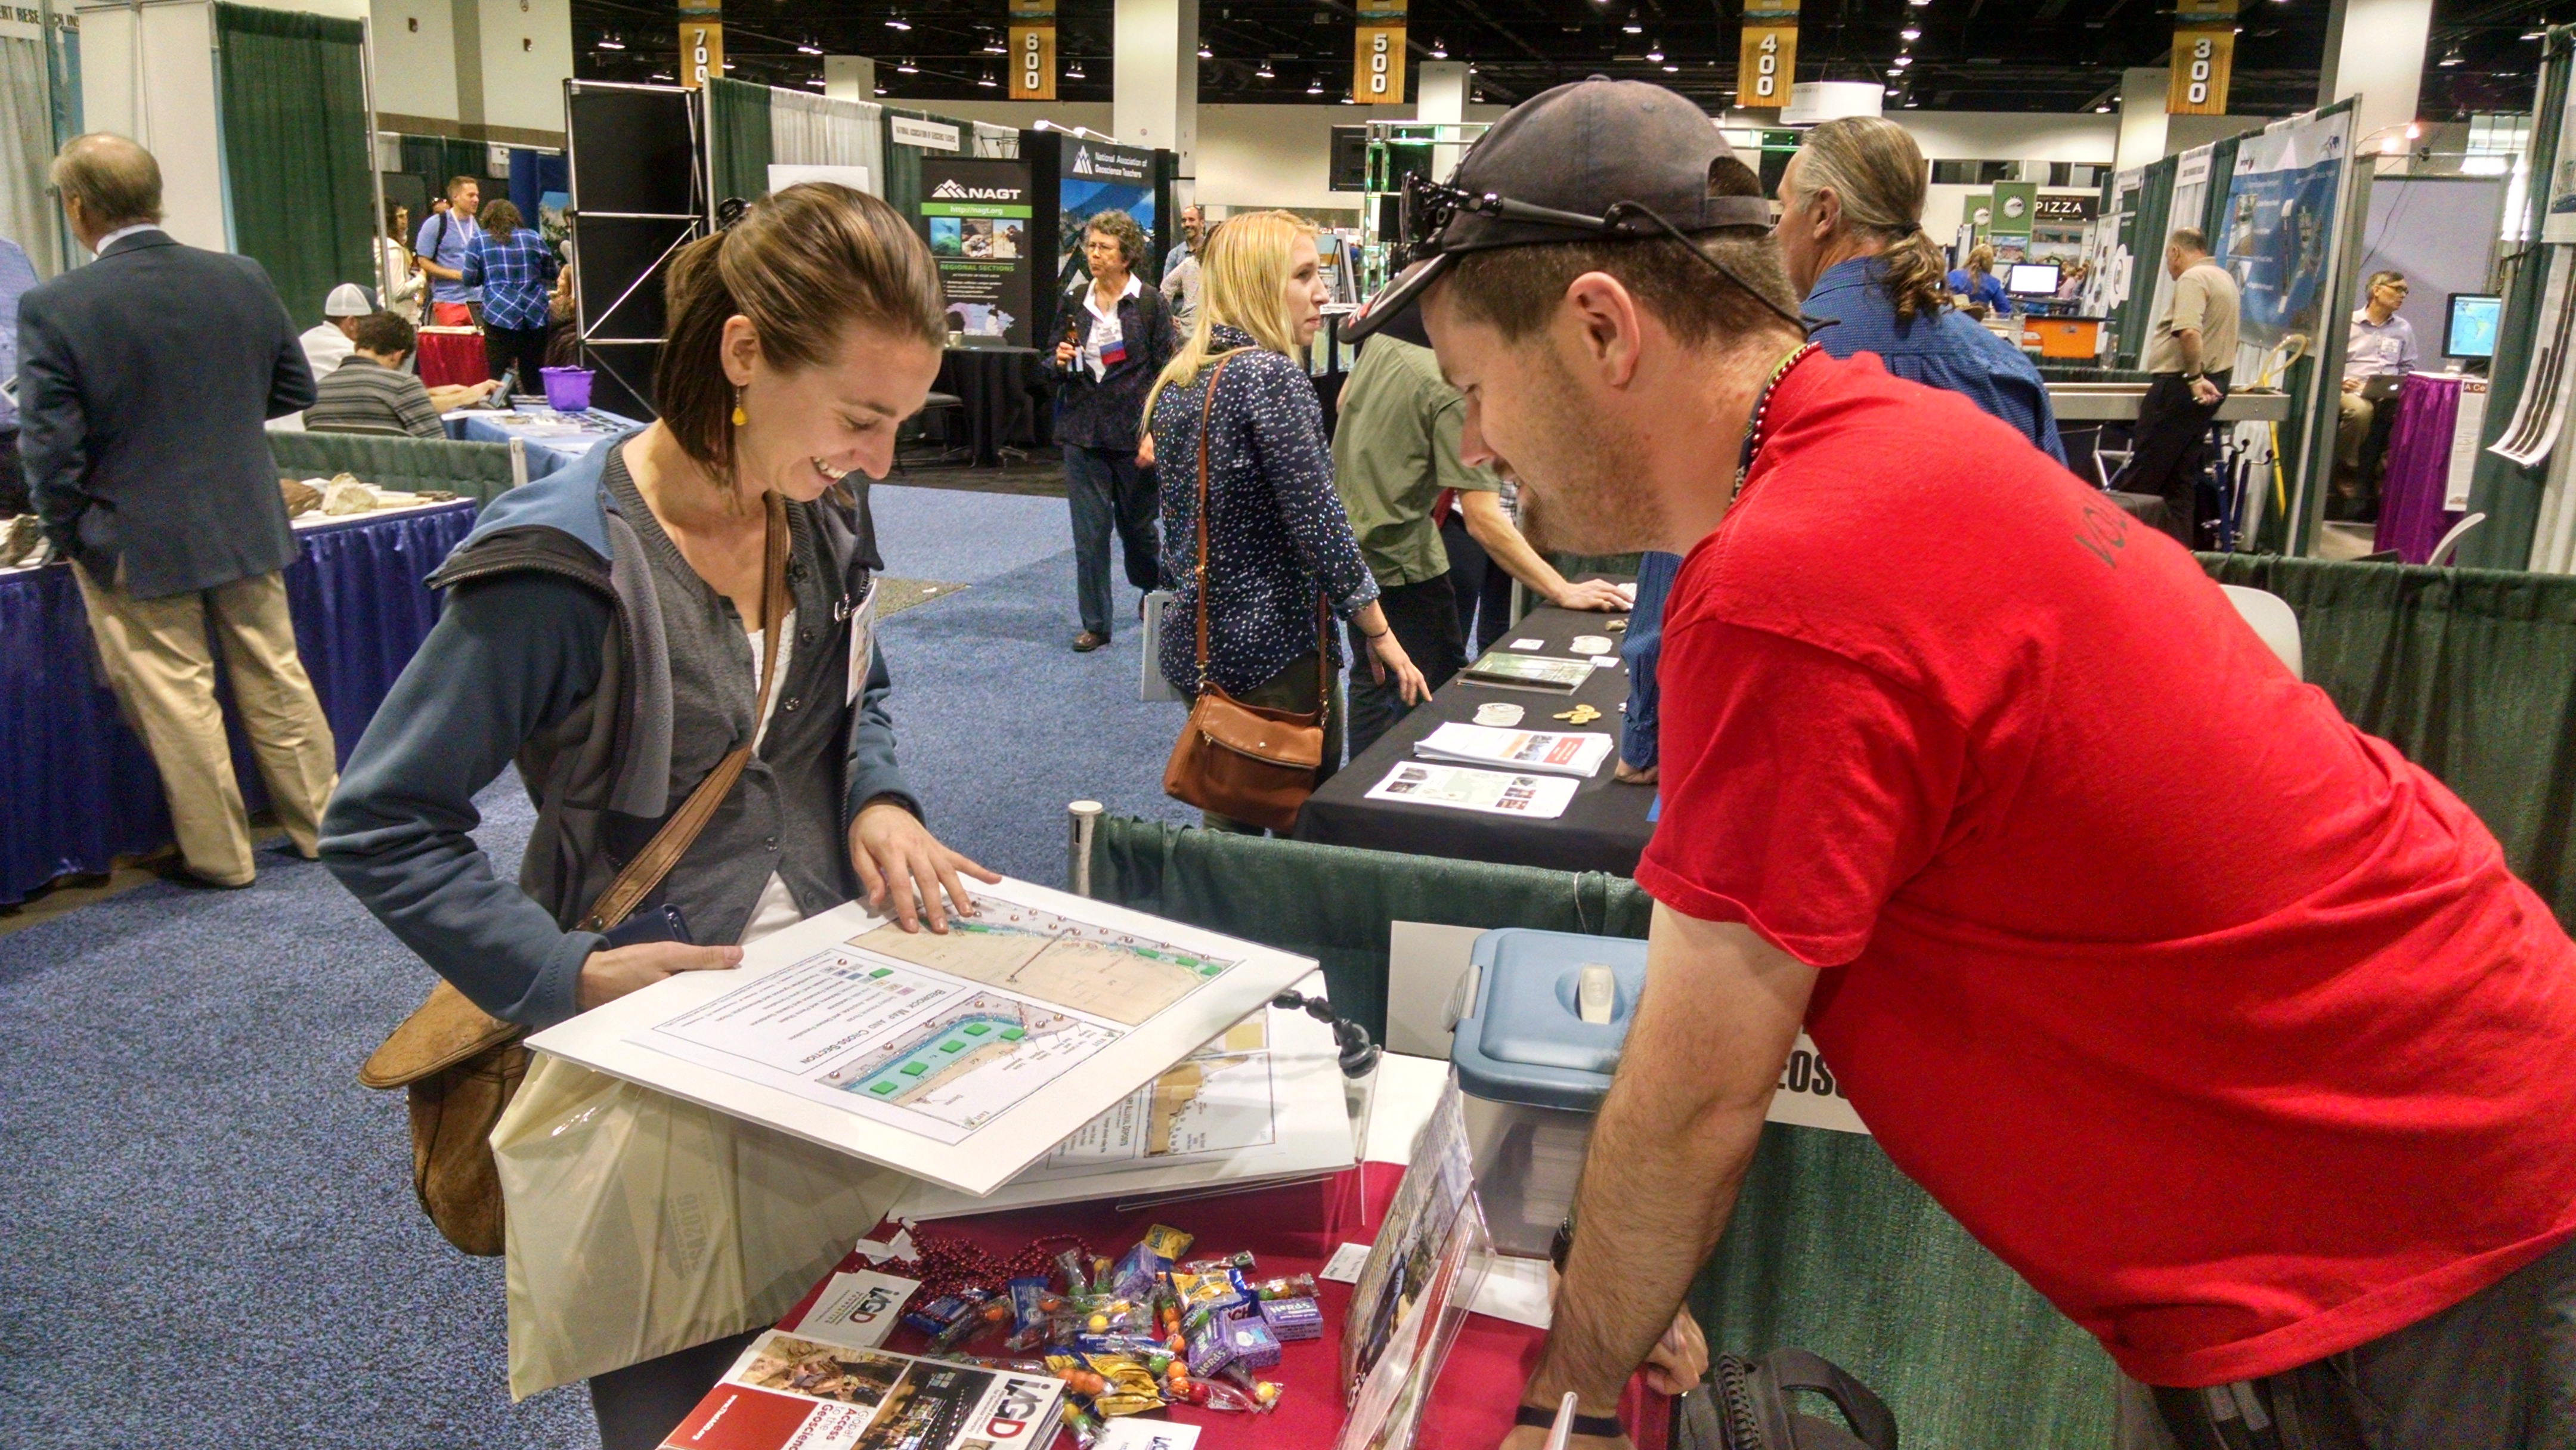 Cole shows a map to a conference attendee at the IAGD booth in the expo hall.